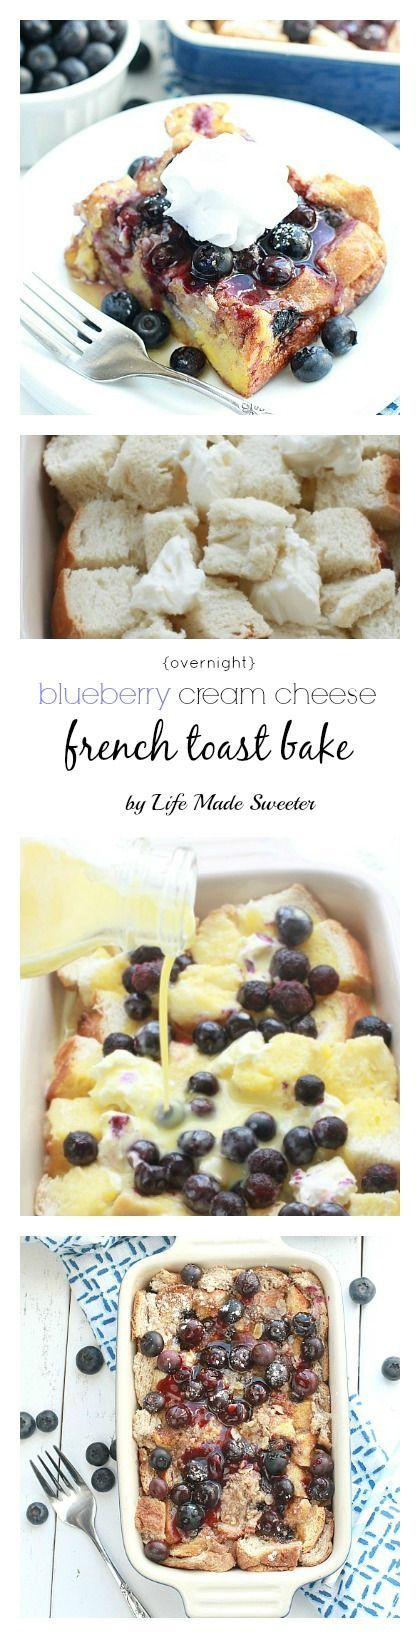 Overnight Blueberry Cream Cheese French Toast Bake - Super easy & delicious baked French Toast bursting with blueberries,cream cheese, brown sugar streusel and the BEST blueberry sauce. Make it the night before and pop it in the oven in the morning. Perfect for Mother's Day or any special breakfast, brunch or even dinner.